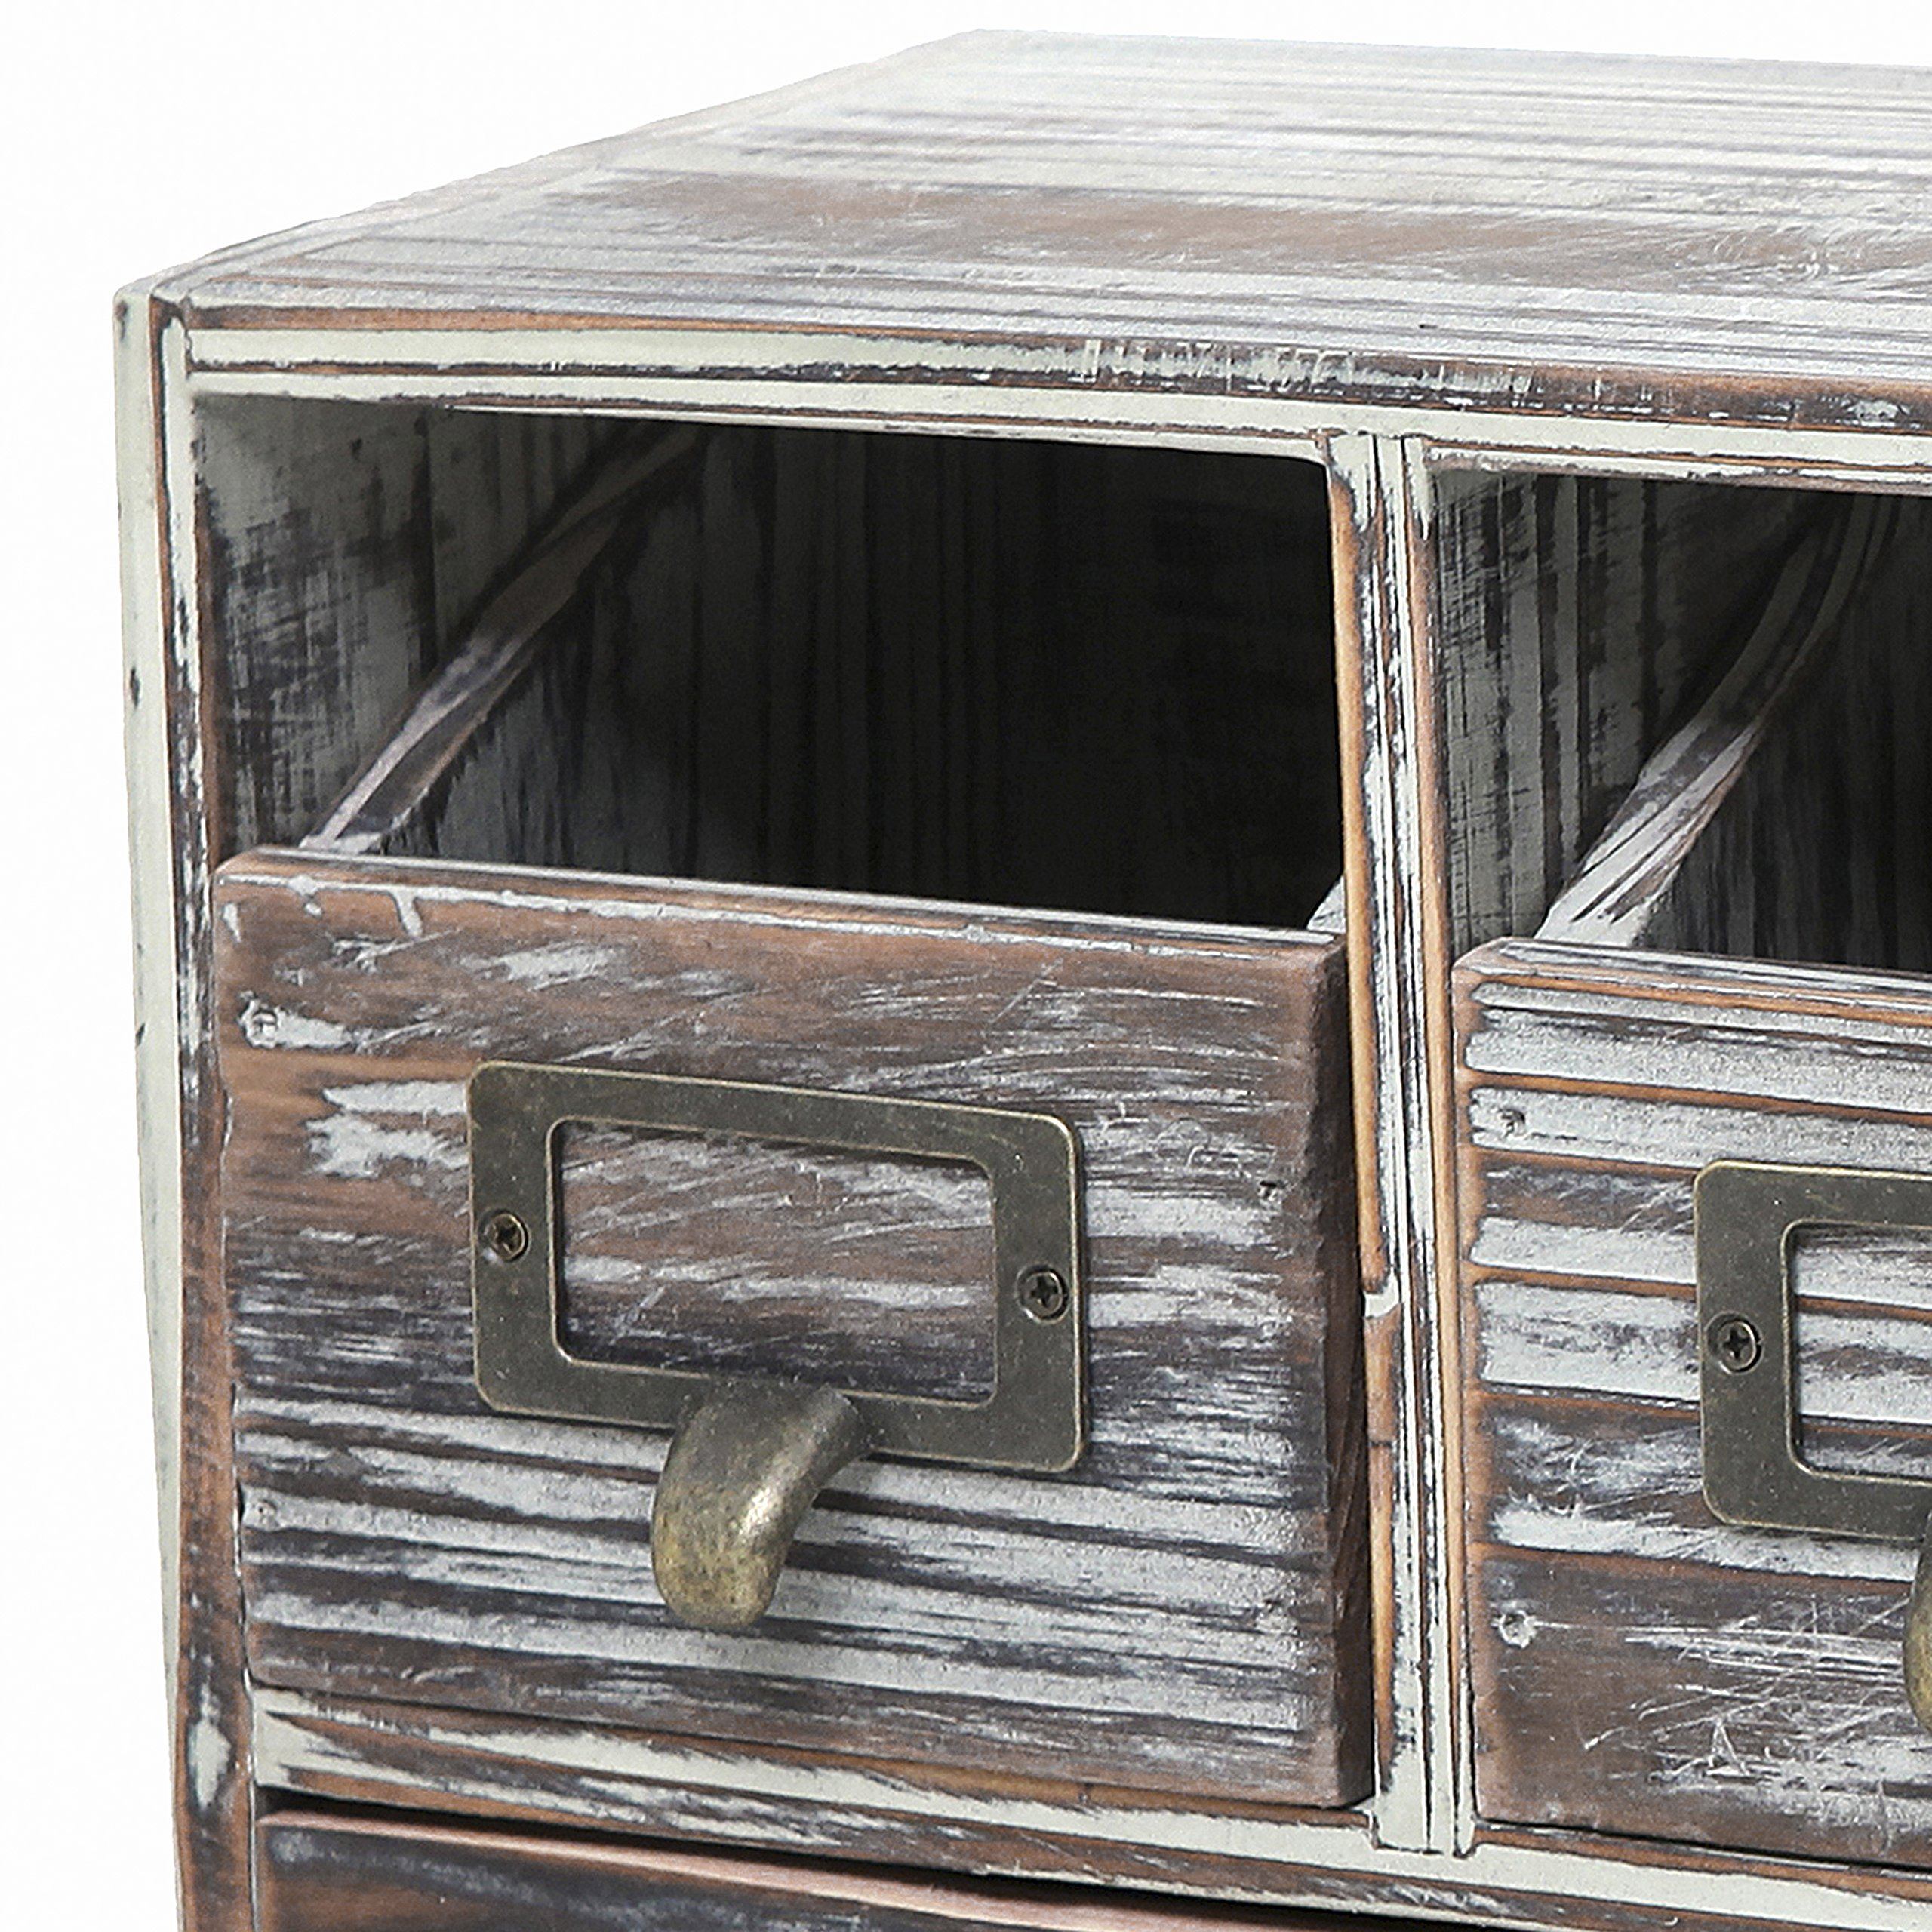 Rustic Brown Torched Wood Finish Desktop Office Organizer Drawers / Craft Supplies Storage Cabinet by MyGift (Image #5)